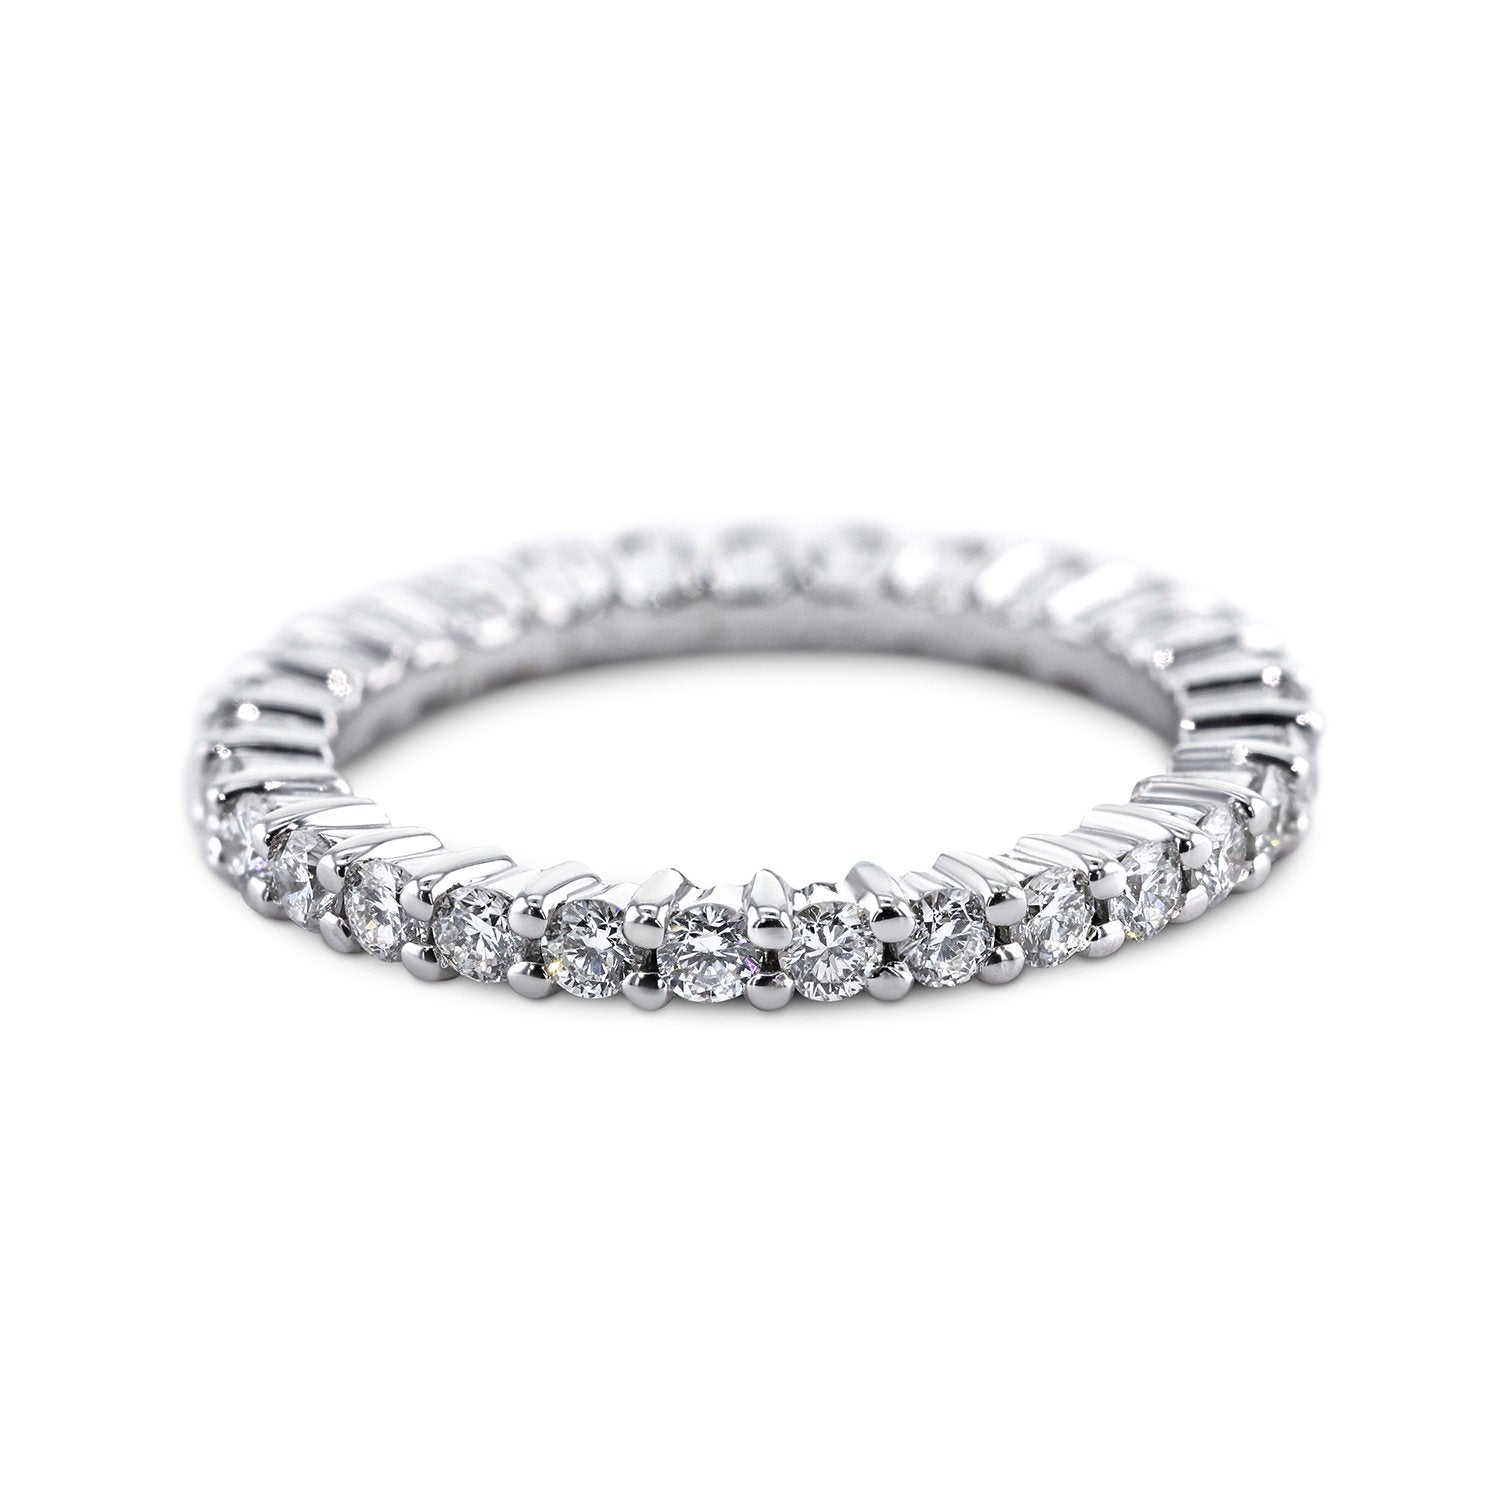 1 Carat Diamond Eternity Wedding Band - 14K White Gold